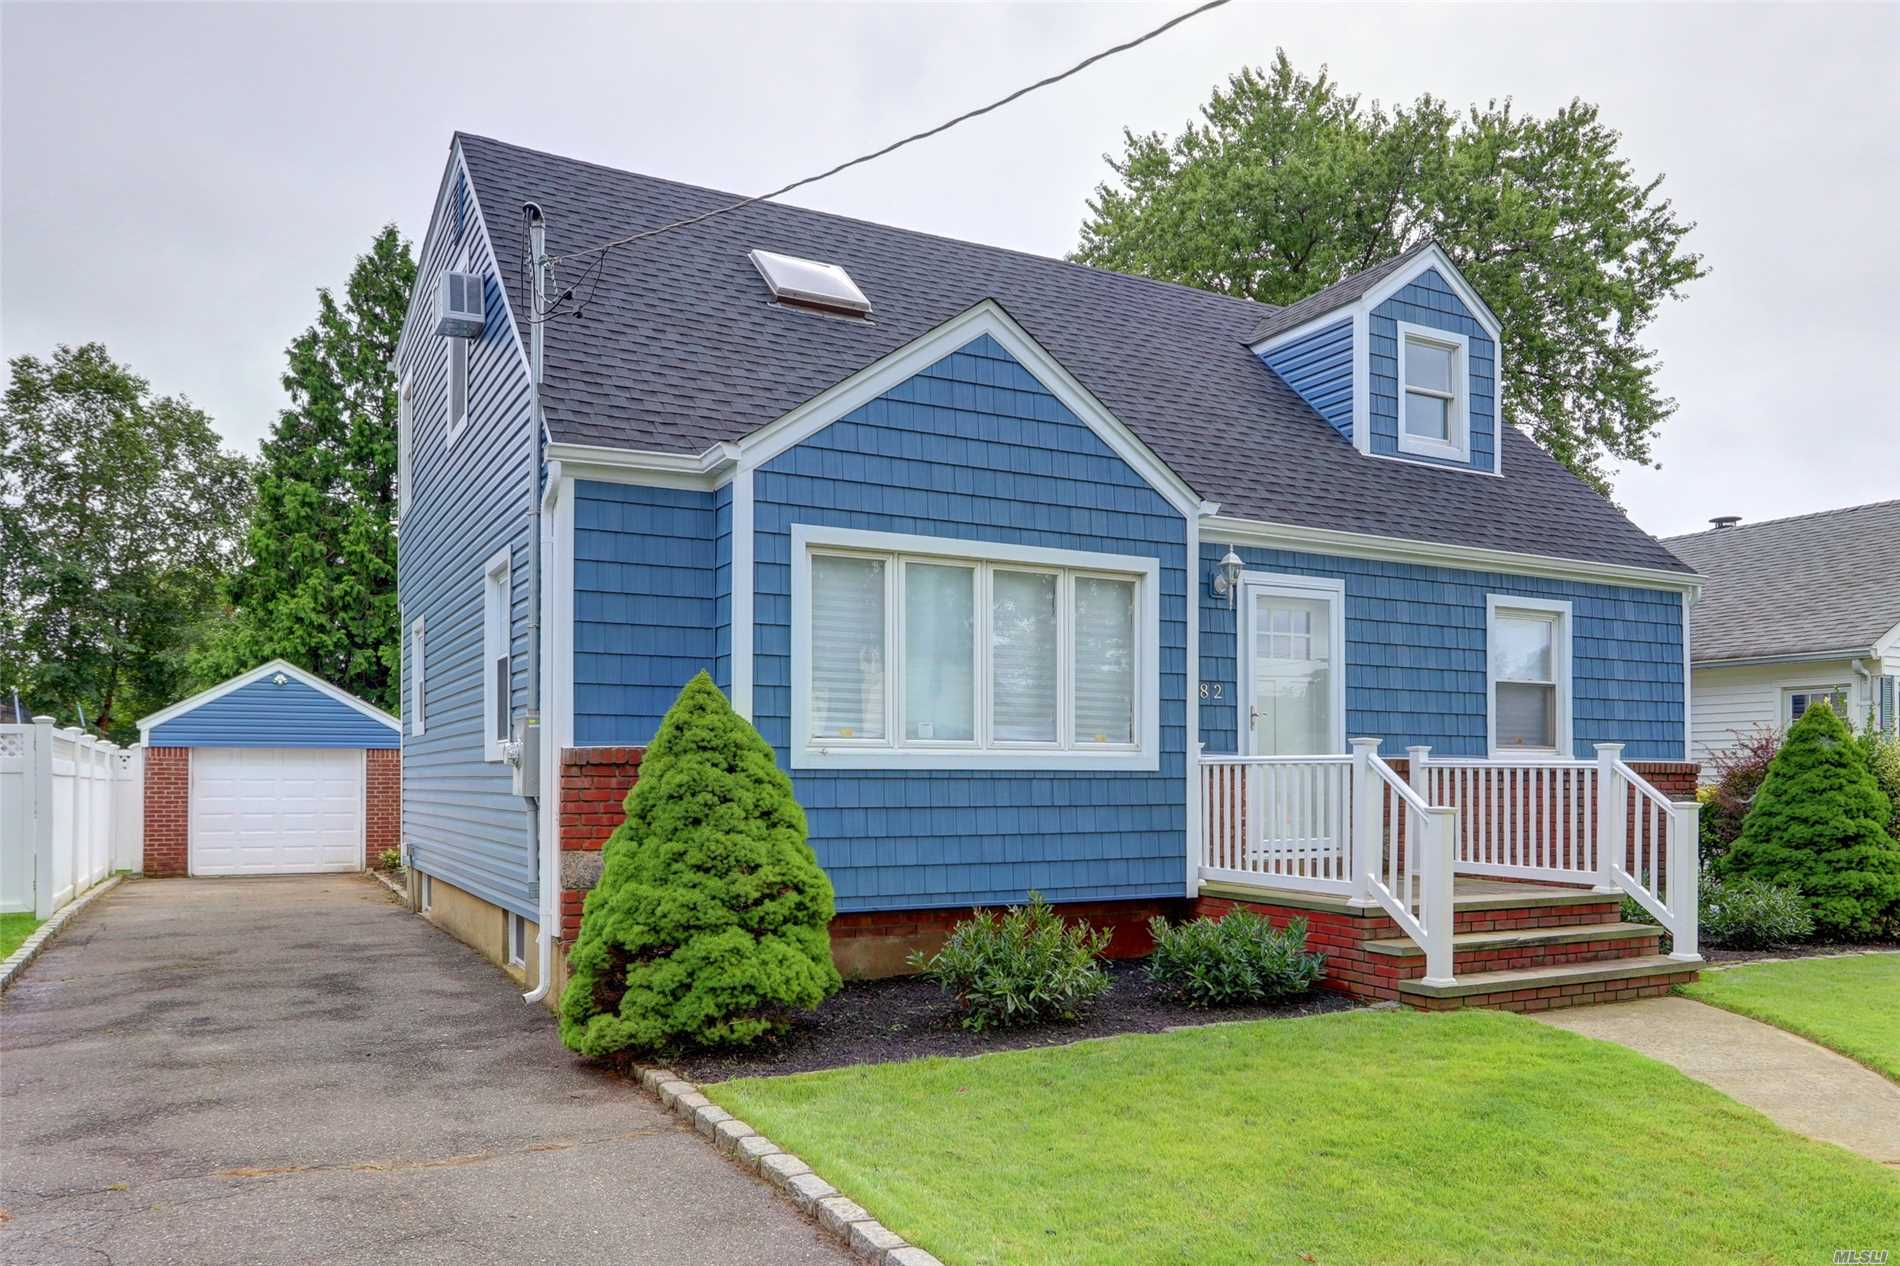 Completely Renovated Expanded Cape Cod Offers: Eik W/ Stainless Steel Apps, Granite Counters, Subway Tile Back Splash, Hwflrs Throughout, Dining Area, Lt, Fam Rm, 2 Full New Bathrooms, Full Part Fin Bsmt, Storage, Utilities, Updated Elec, 1 Car Garage , Beautiful Deck, Low Taxes, Oceanside Schools District 11, True Taxes Are 13, 177.00 Star Program For This Area Is Approximately 1500. By Appt Only